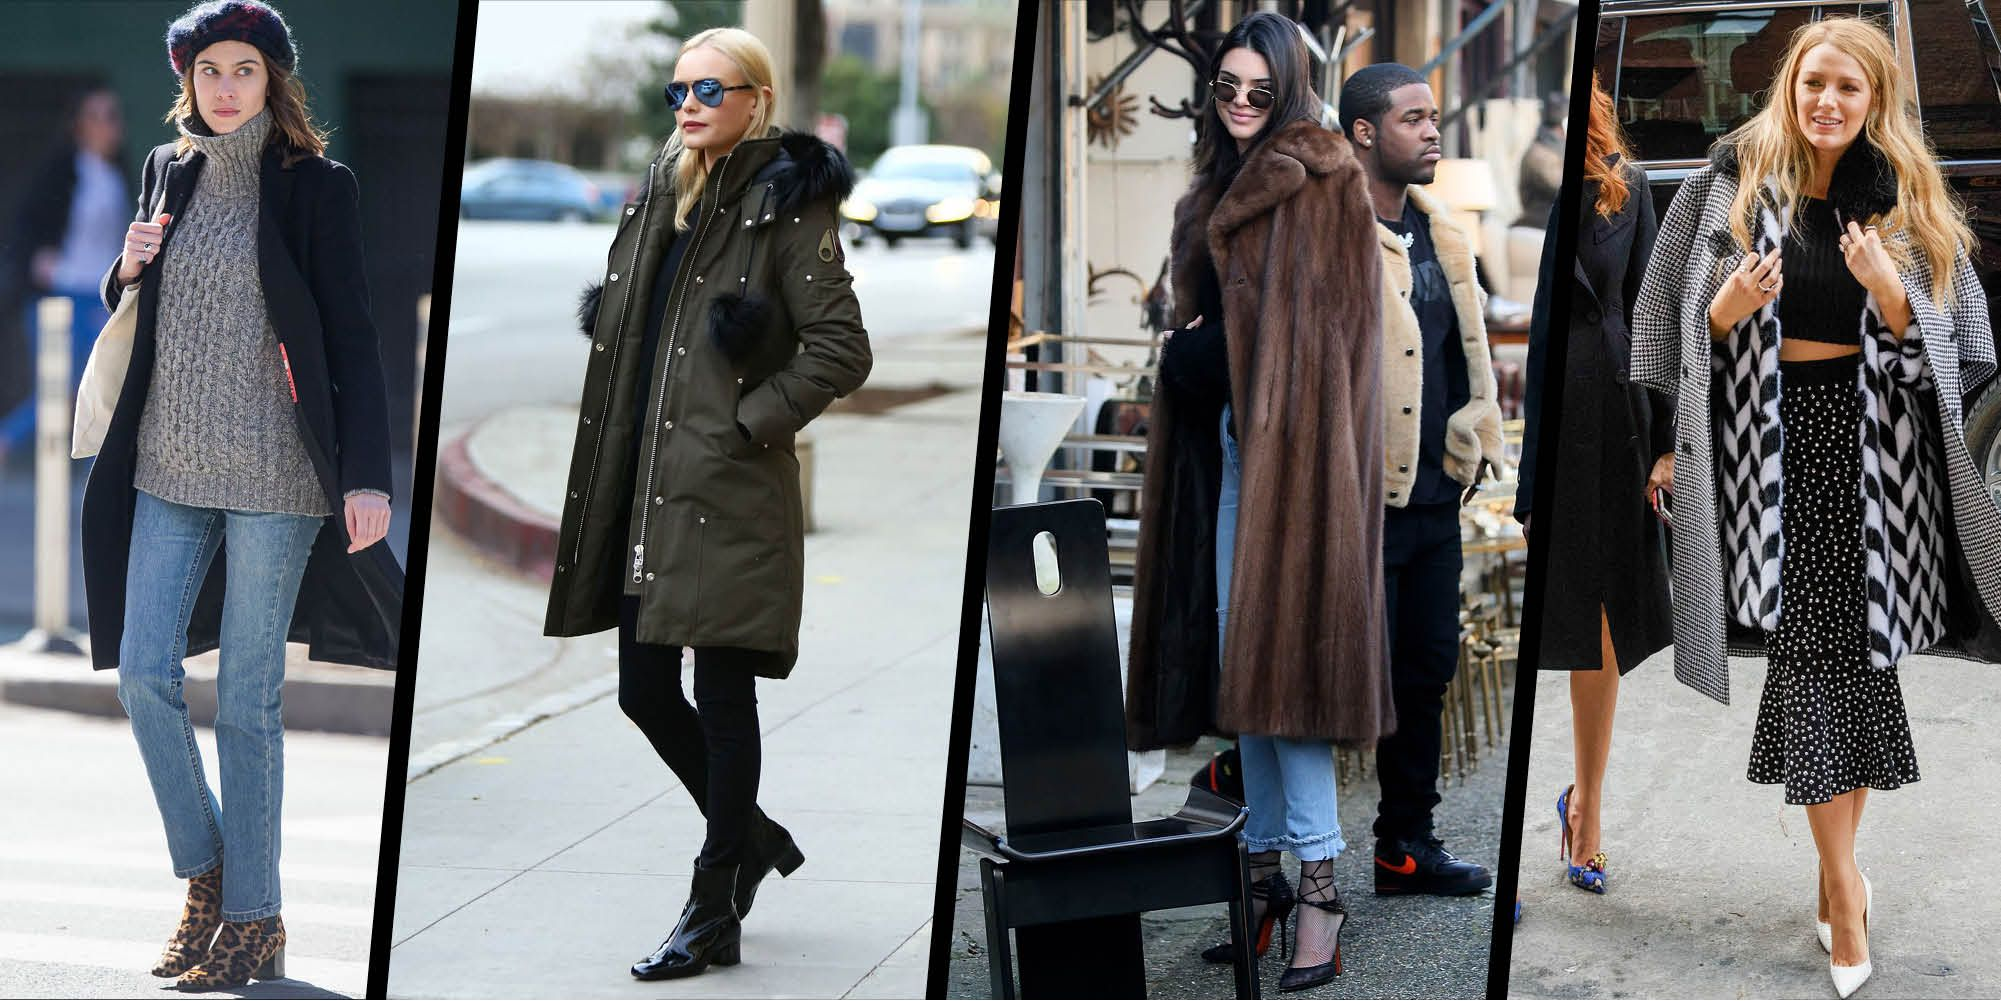 10 Best Winter Coats for Women TheStreet